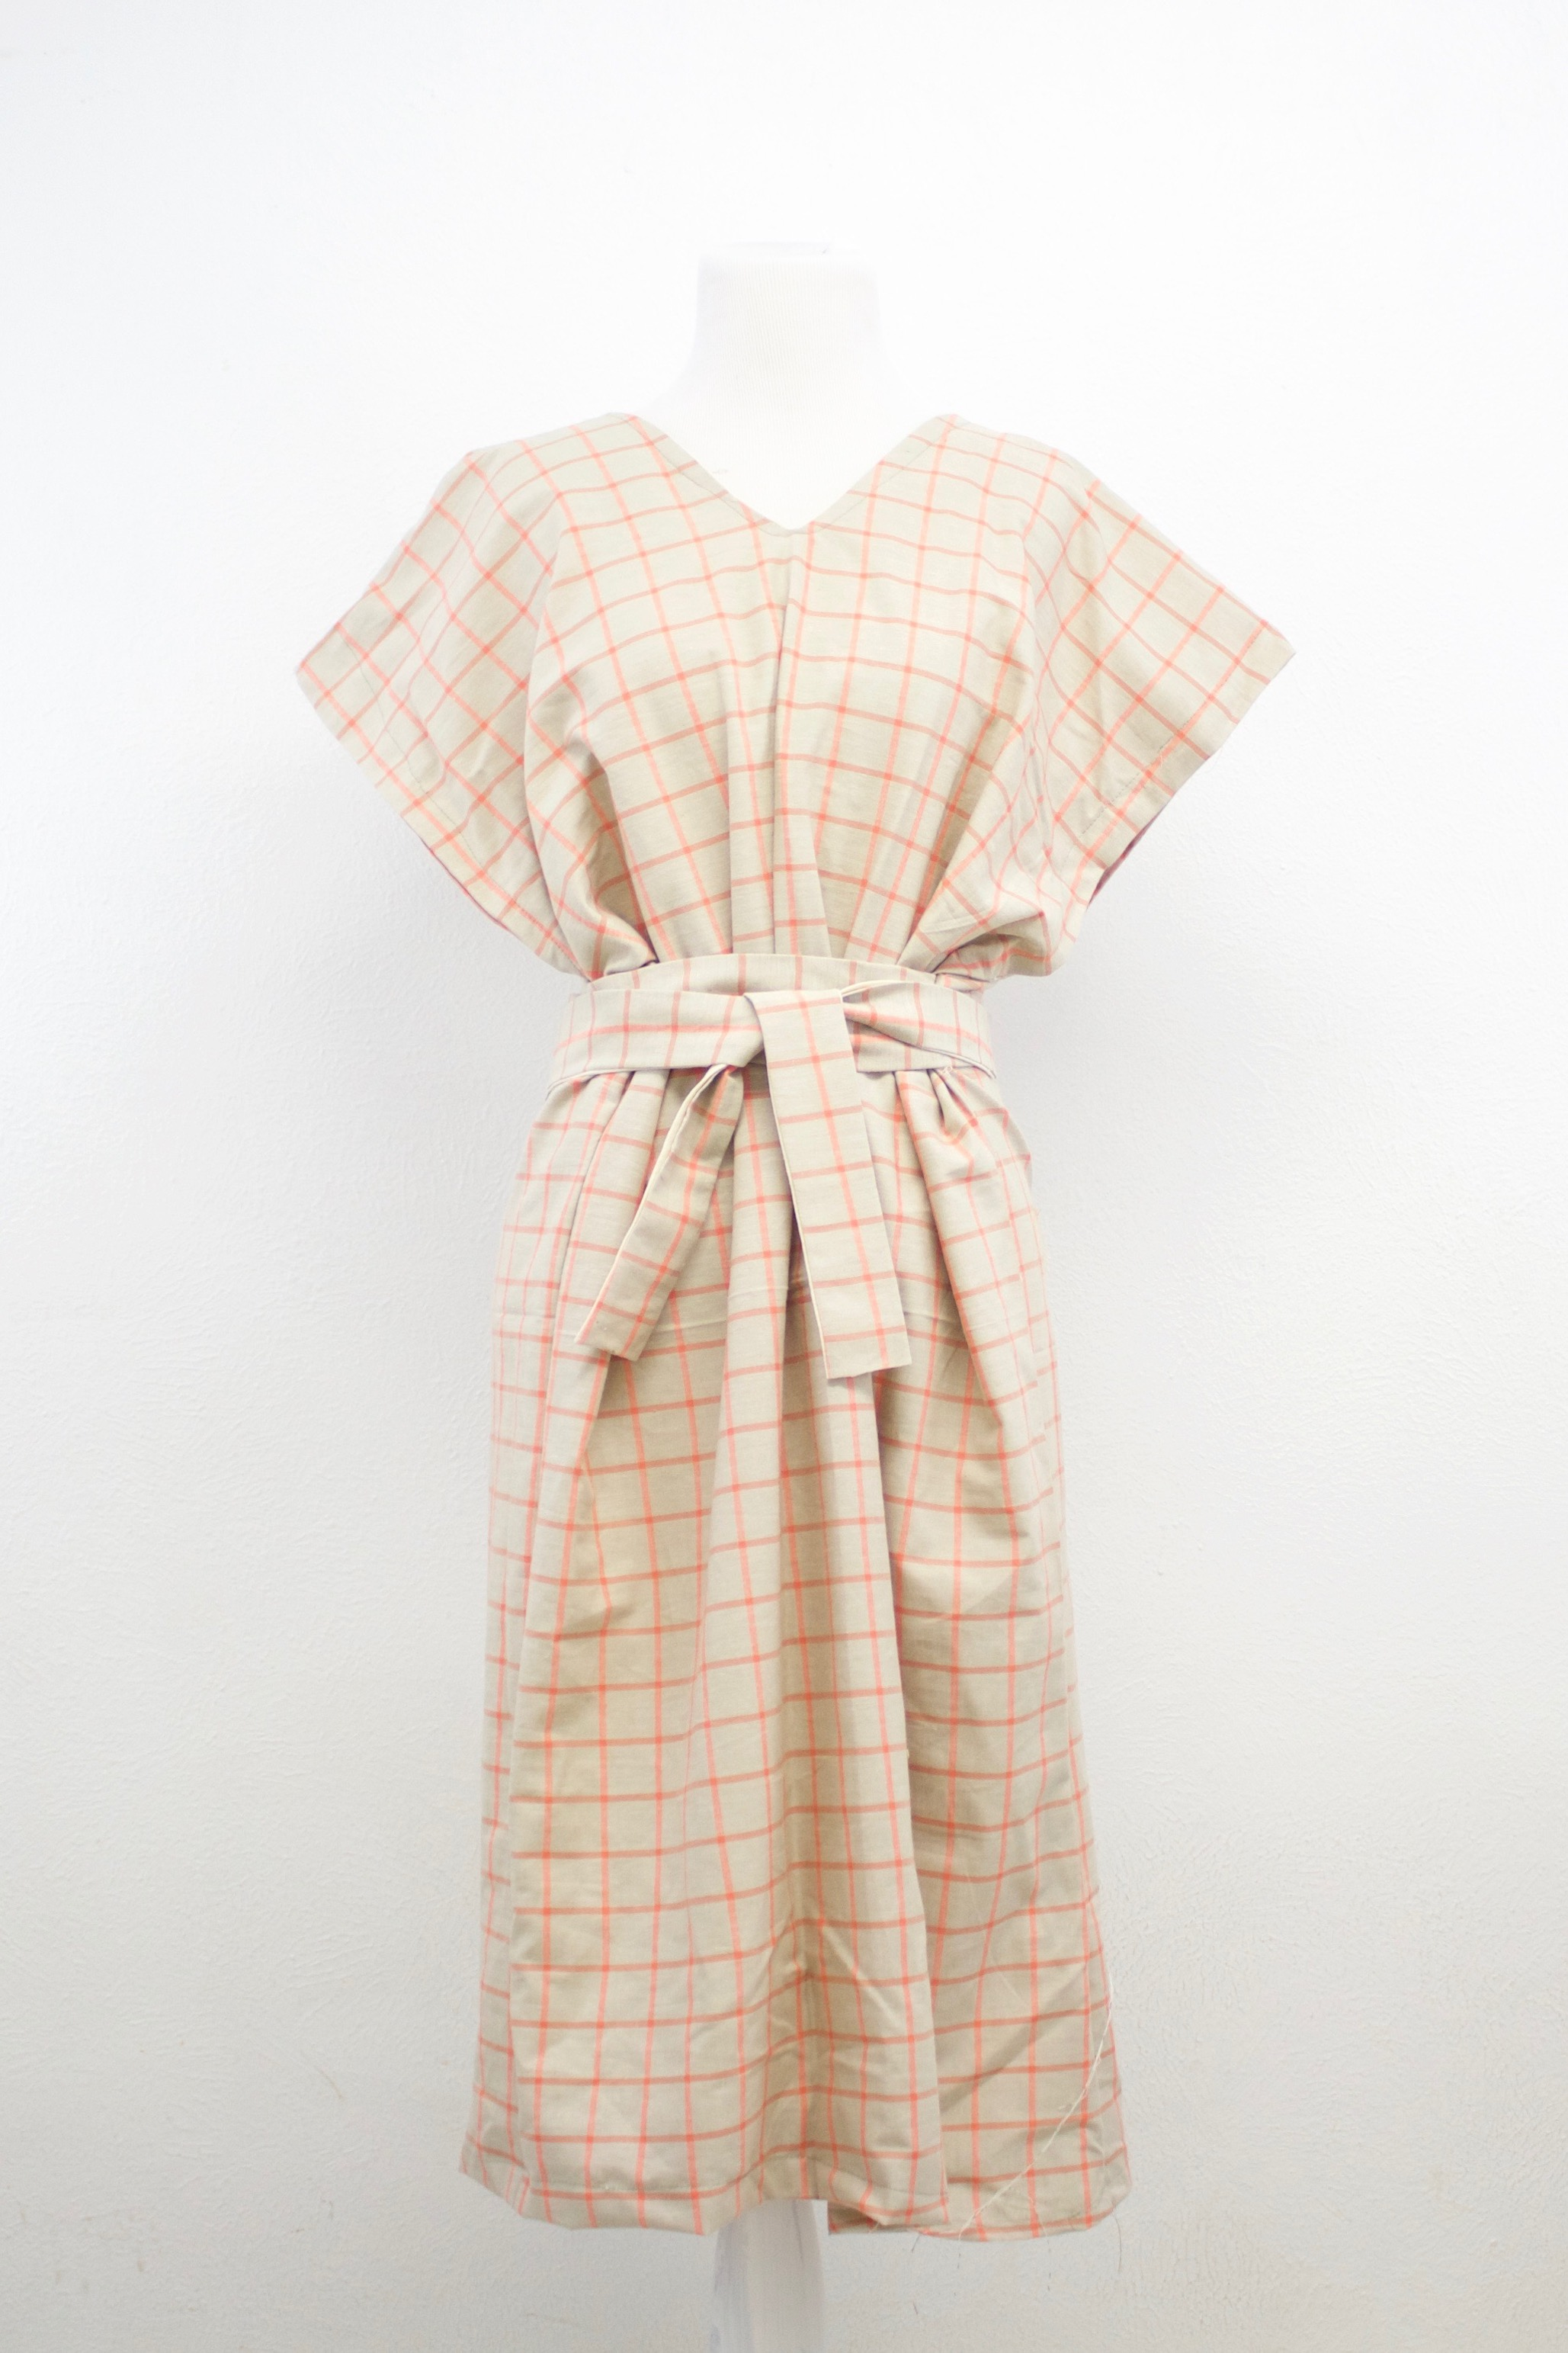 - Peach Grid Dress | $79.99